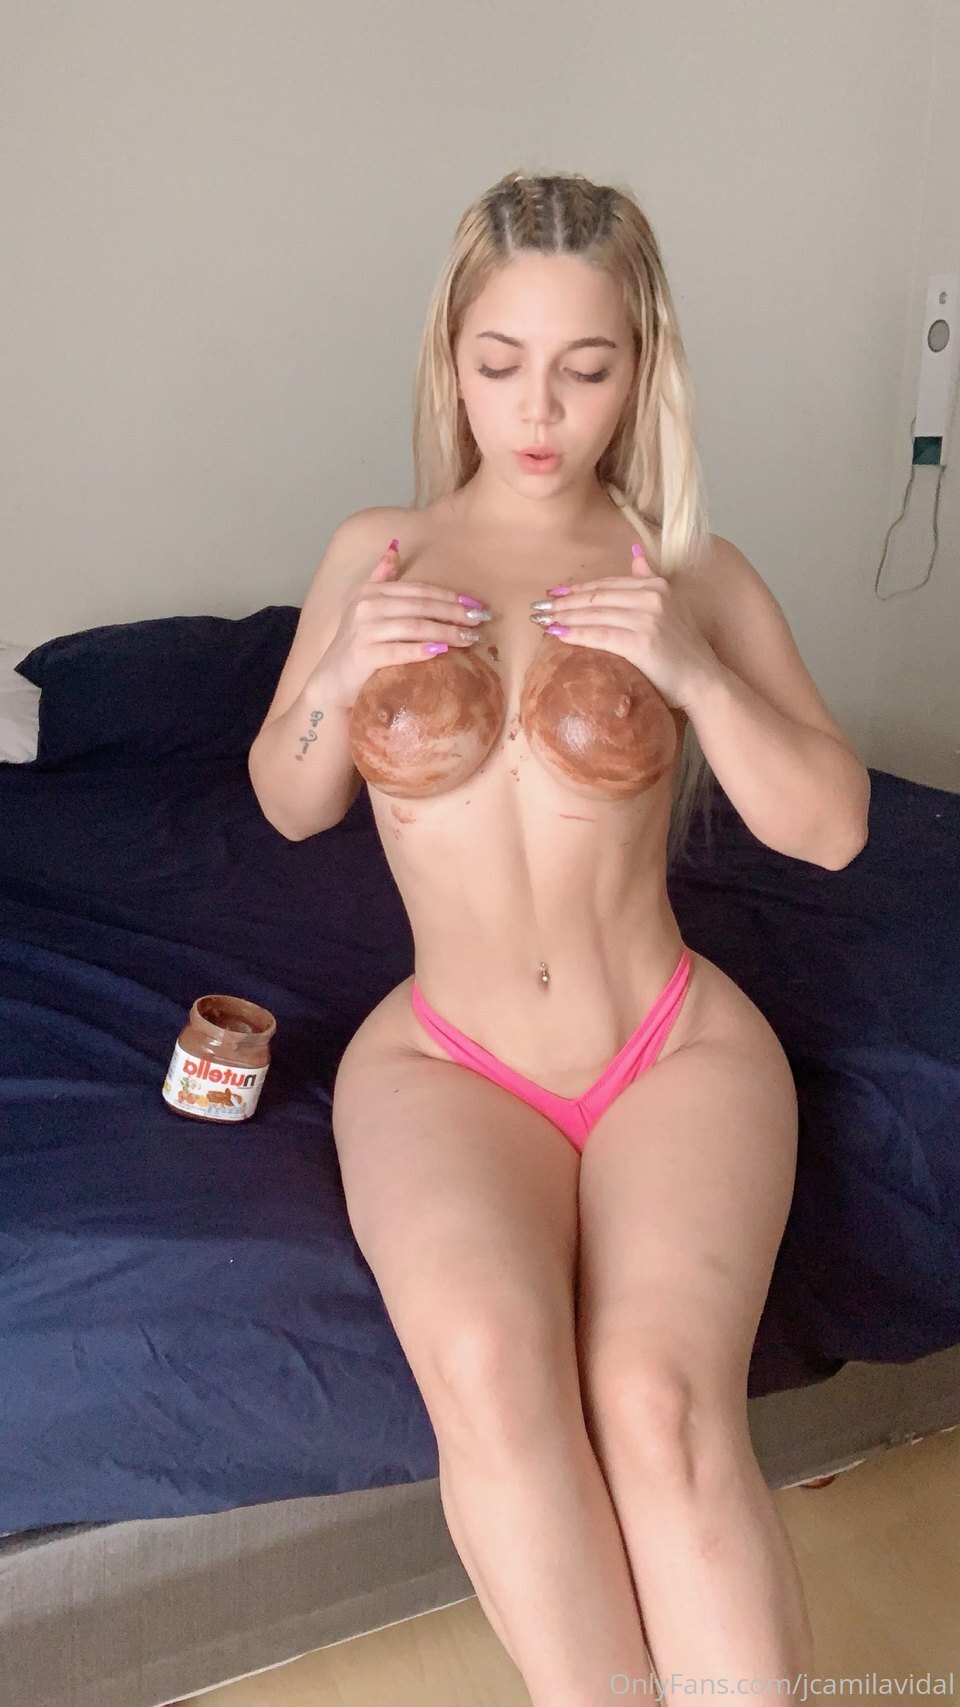 Camila anitapacks Porn OnlyFans Leaked Gallery